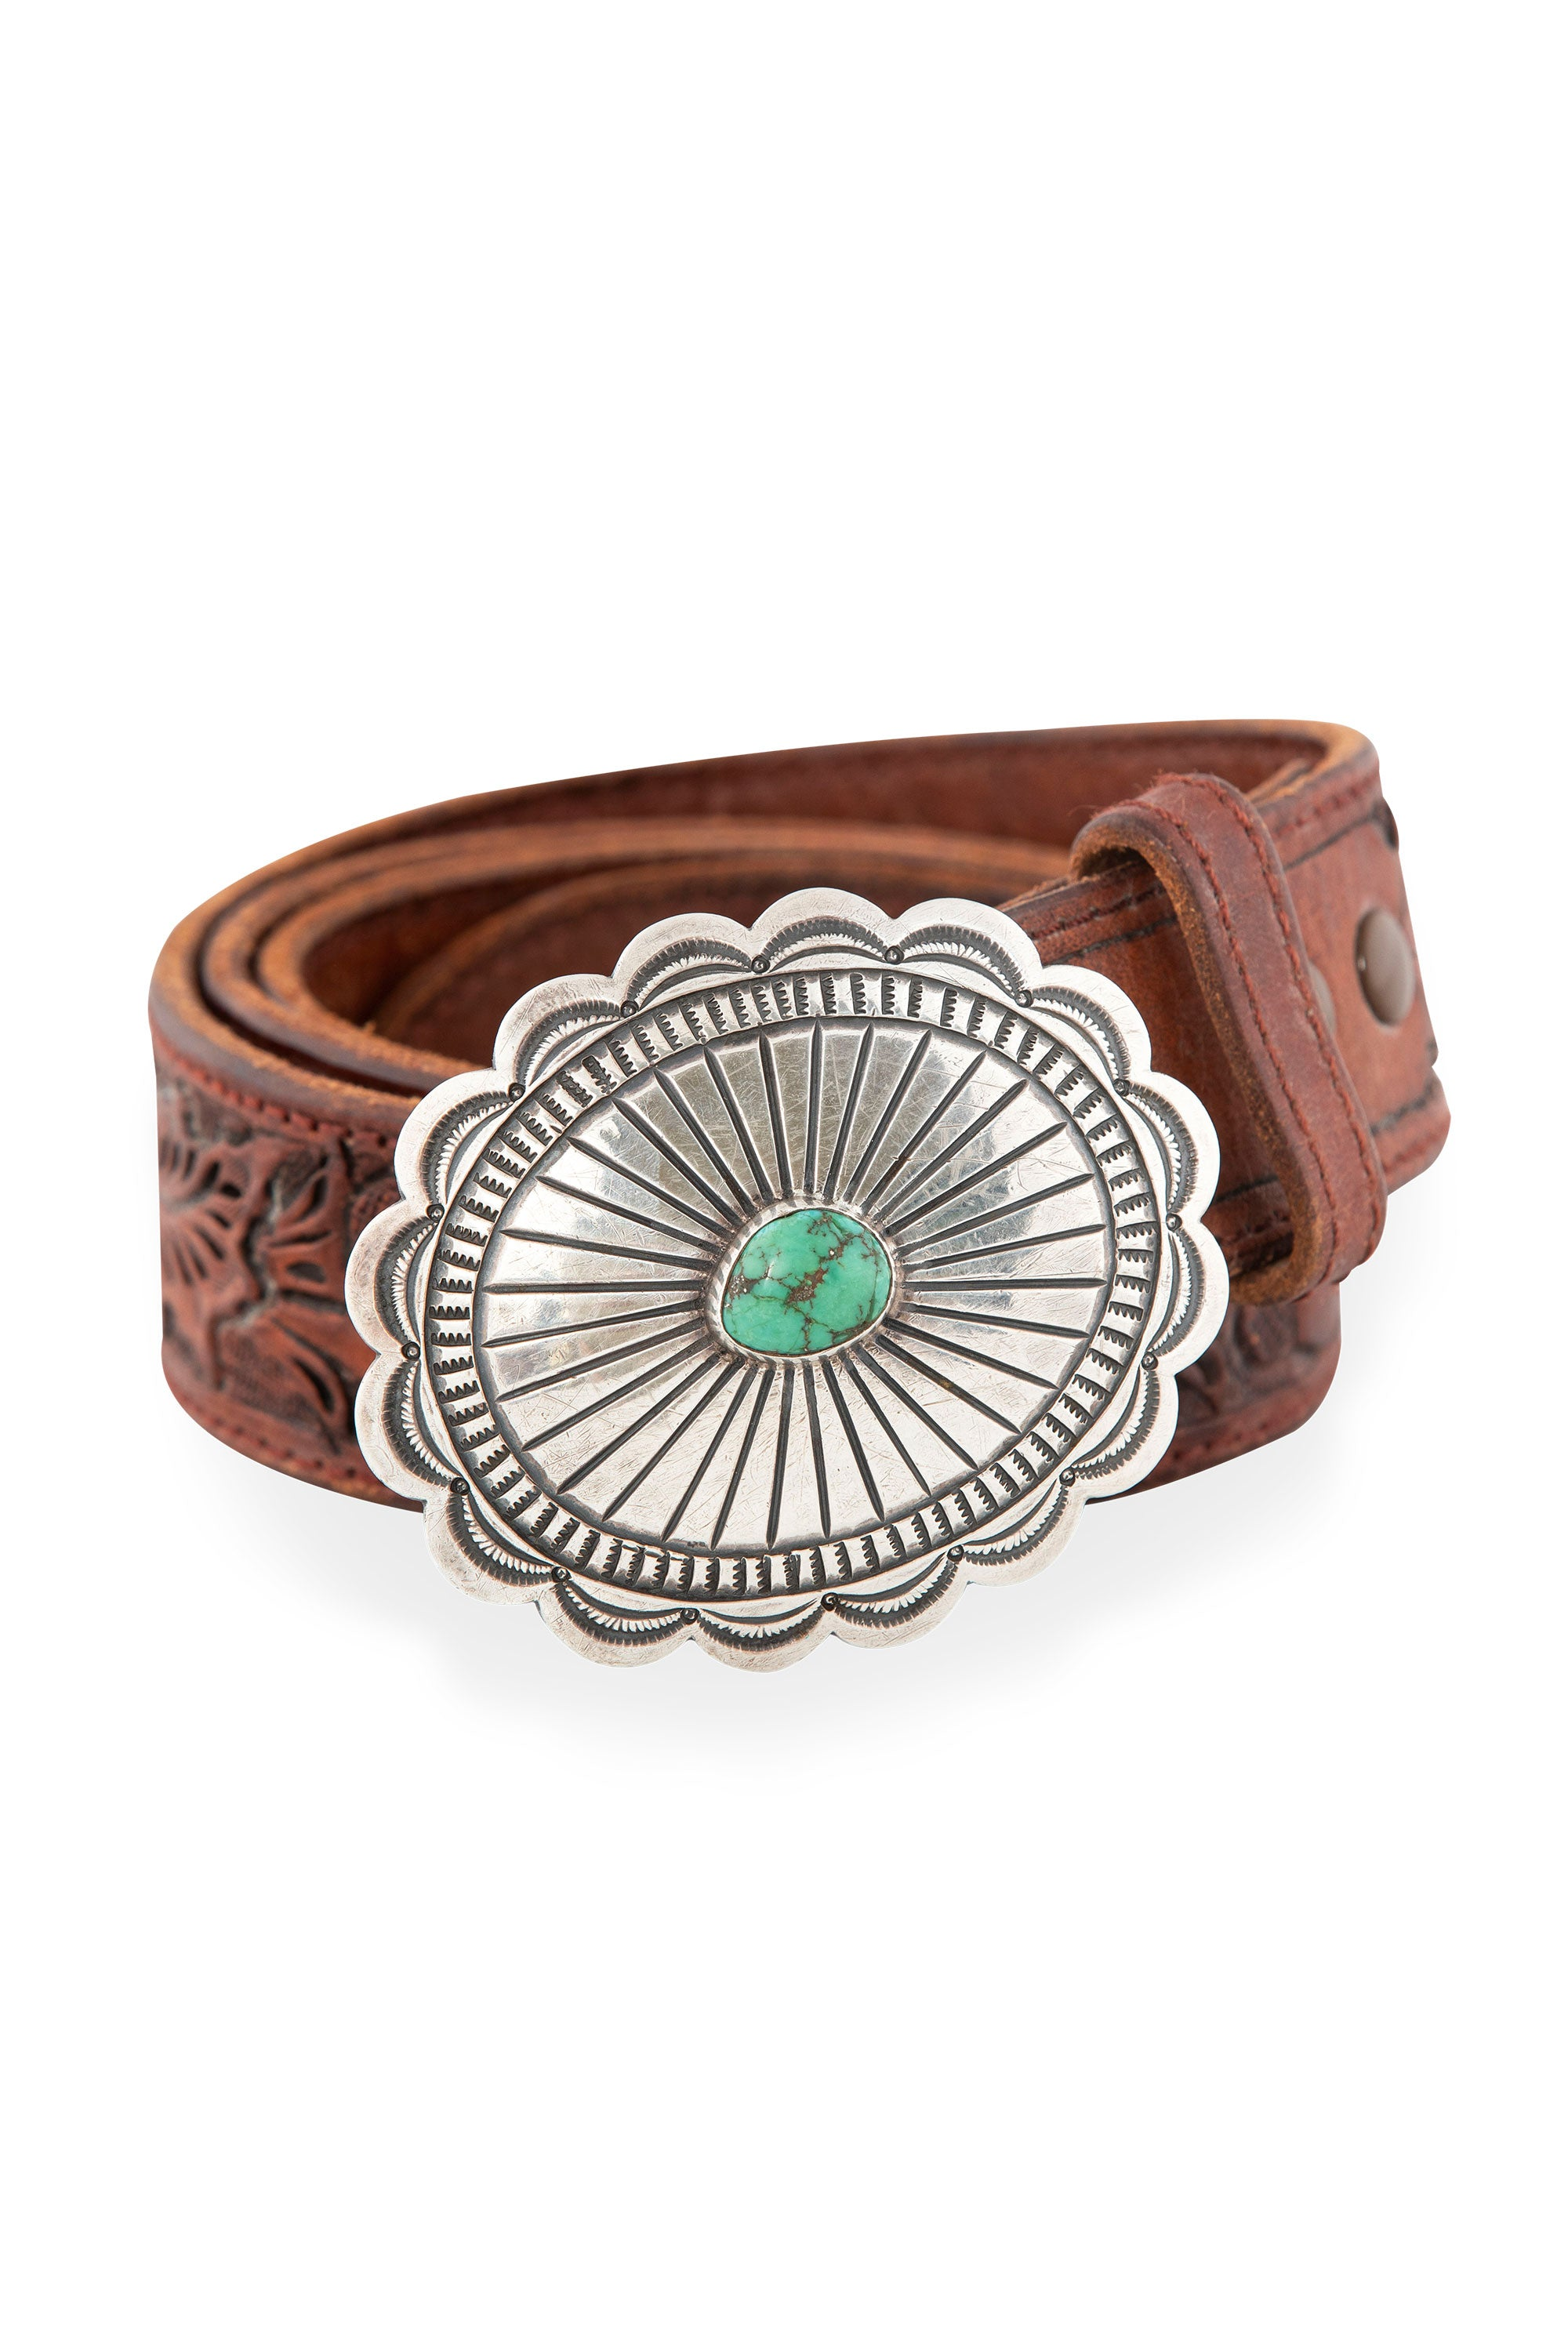 Belt, Concho Buckle, Turquoise, Sterling Silver, Western Tooled Leather Strap, Vintage, 680